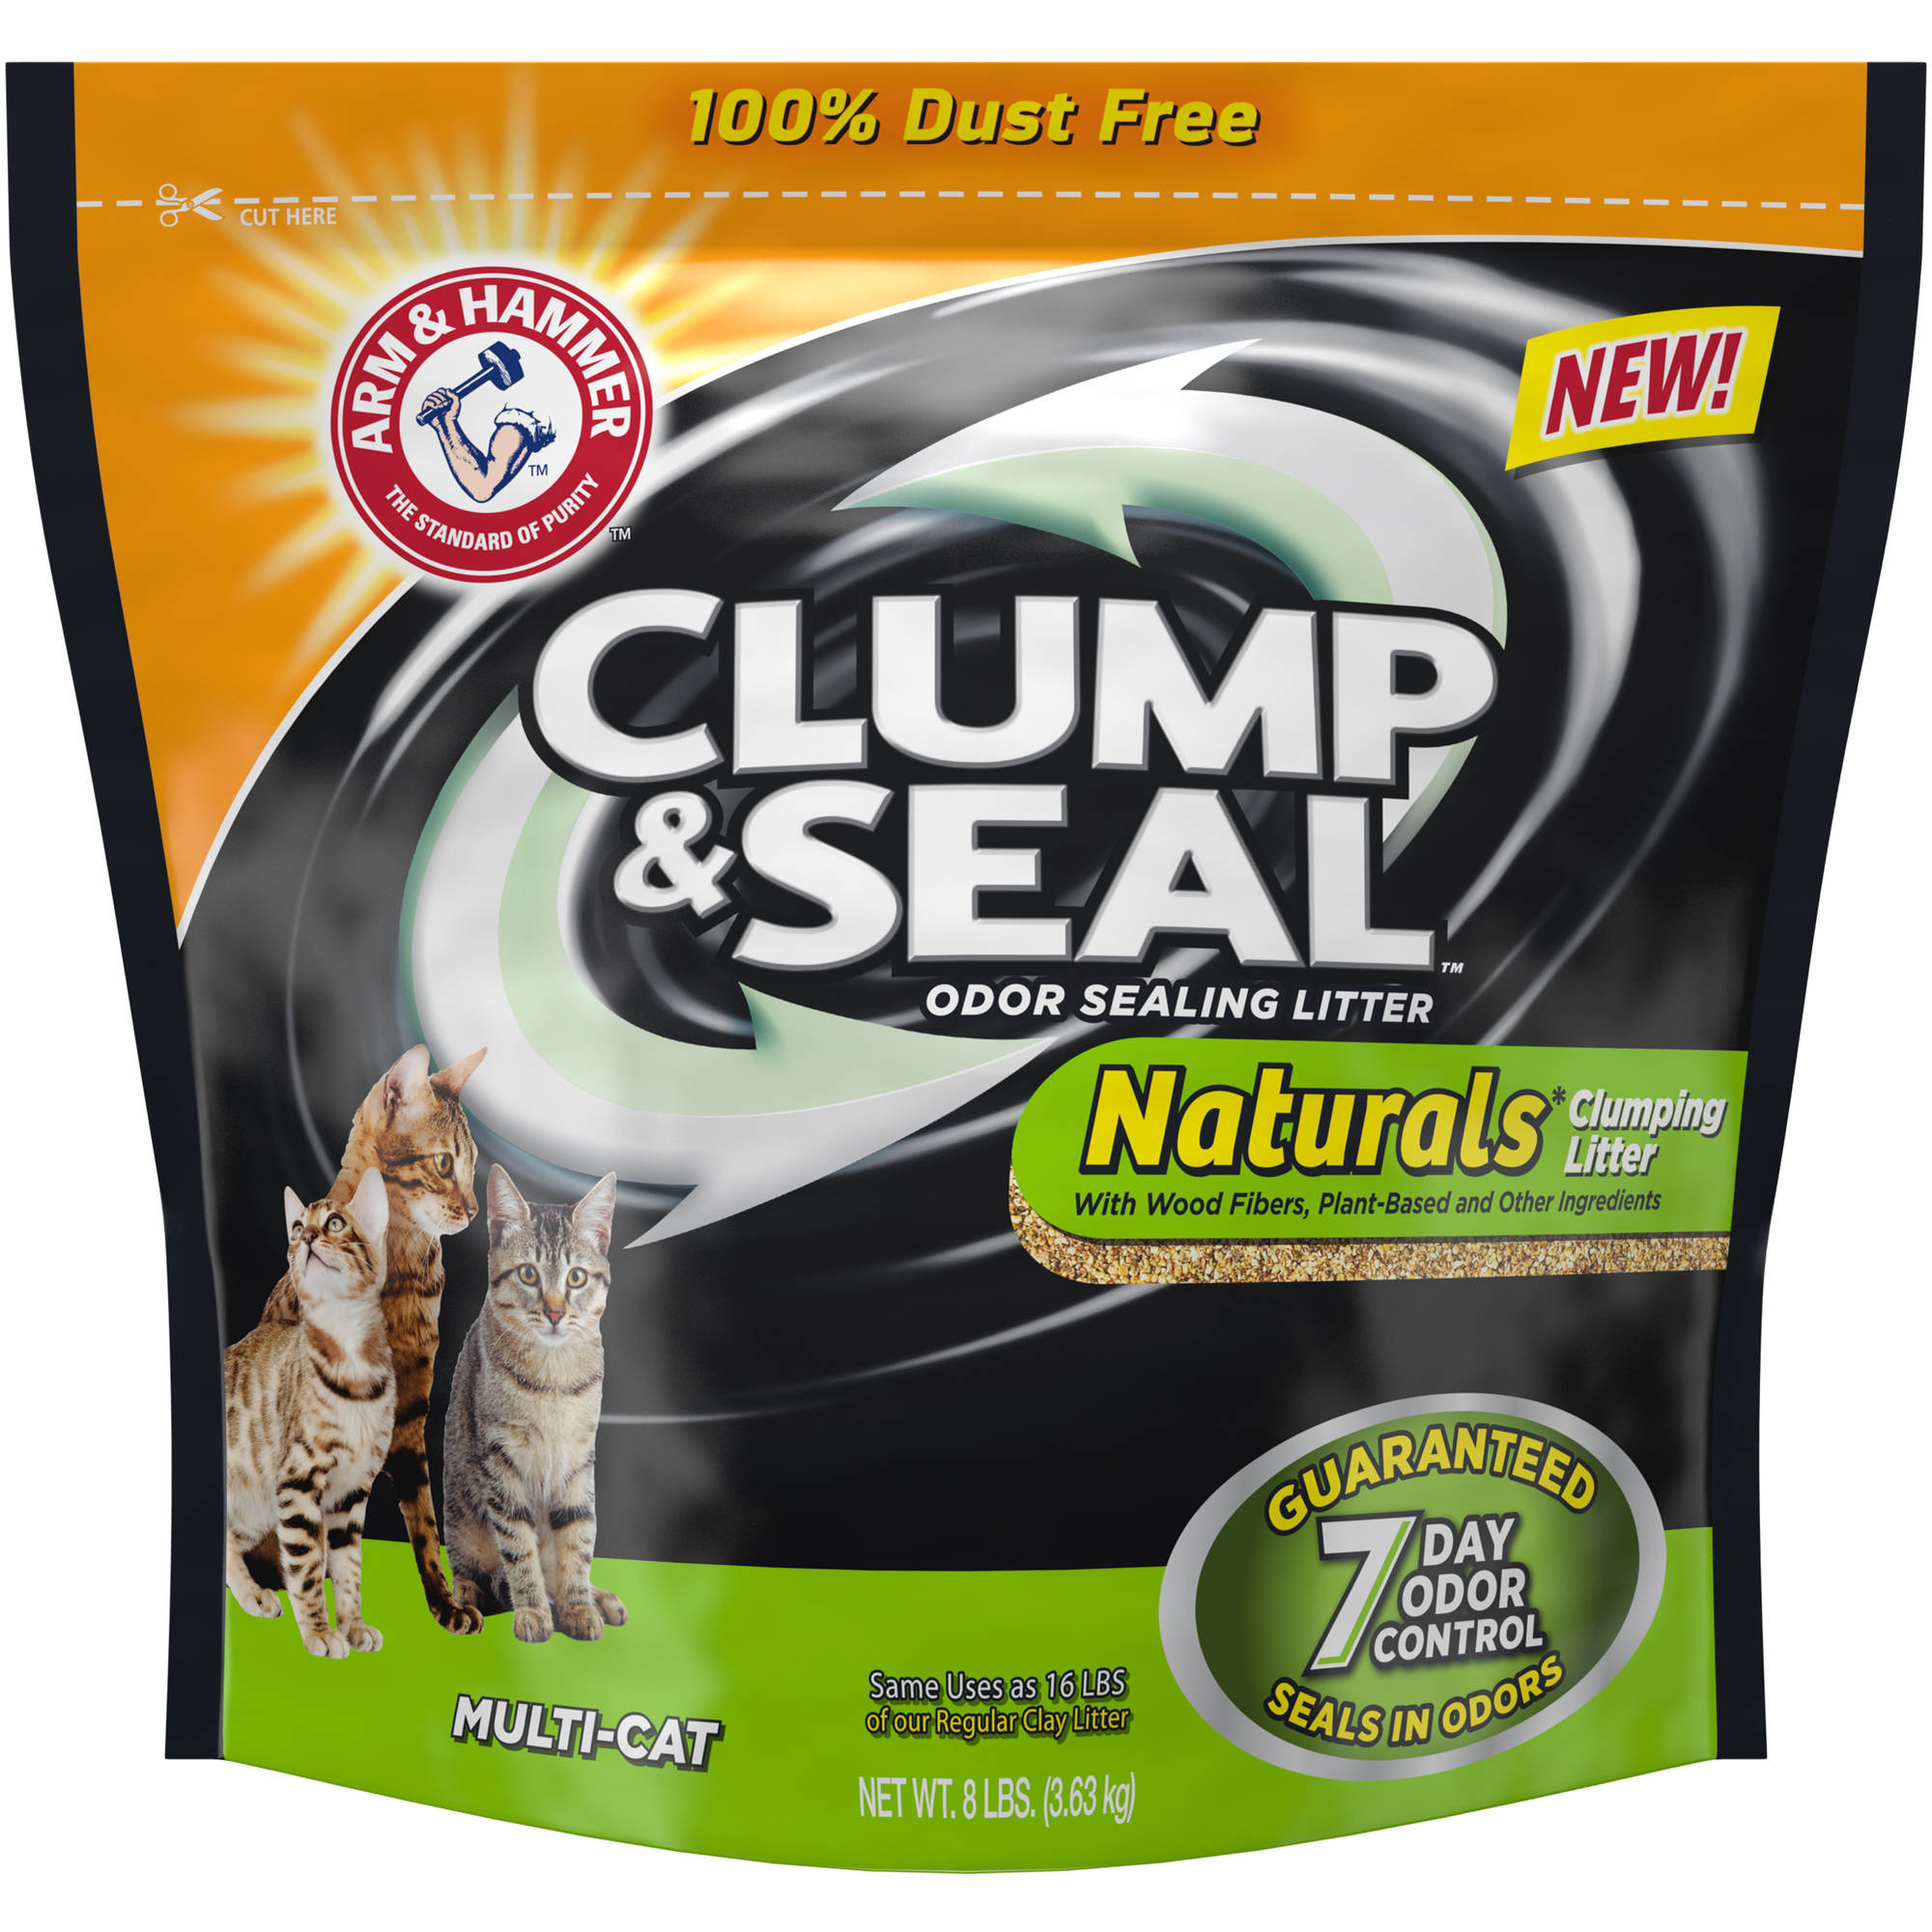 Arm & Hammer Clump & Seal Naturals Multi-Cat Odor-Sealing Cat Litter 8 lbs. Bag